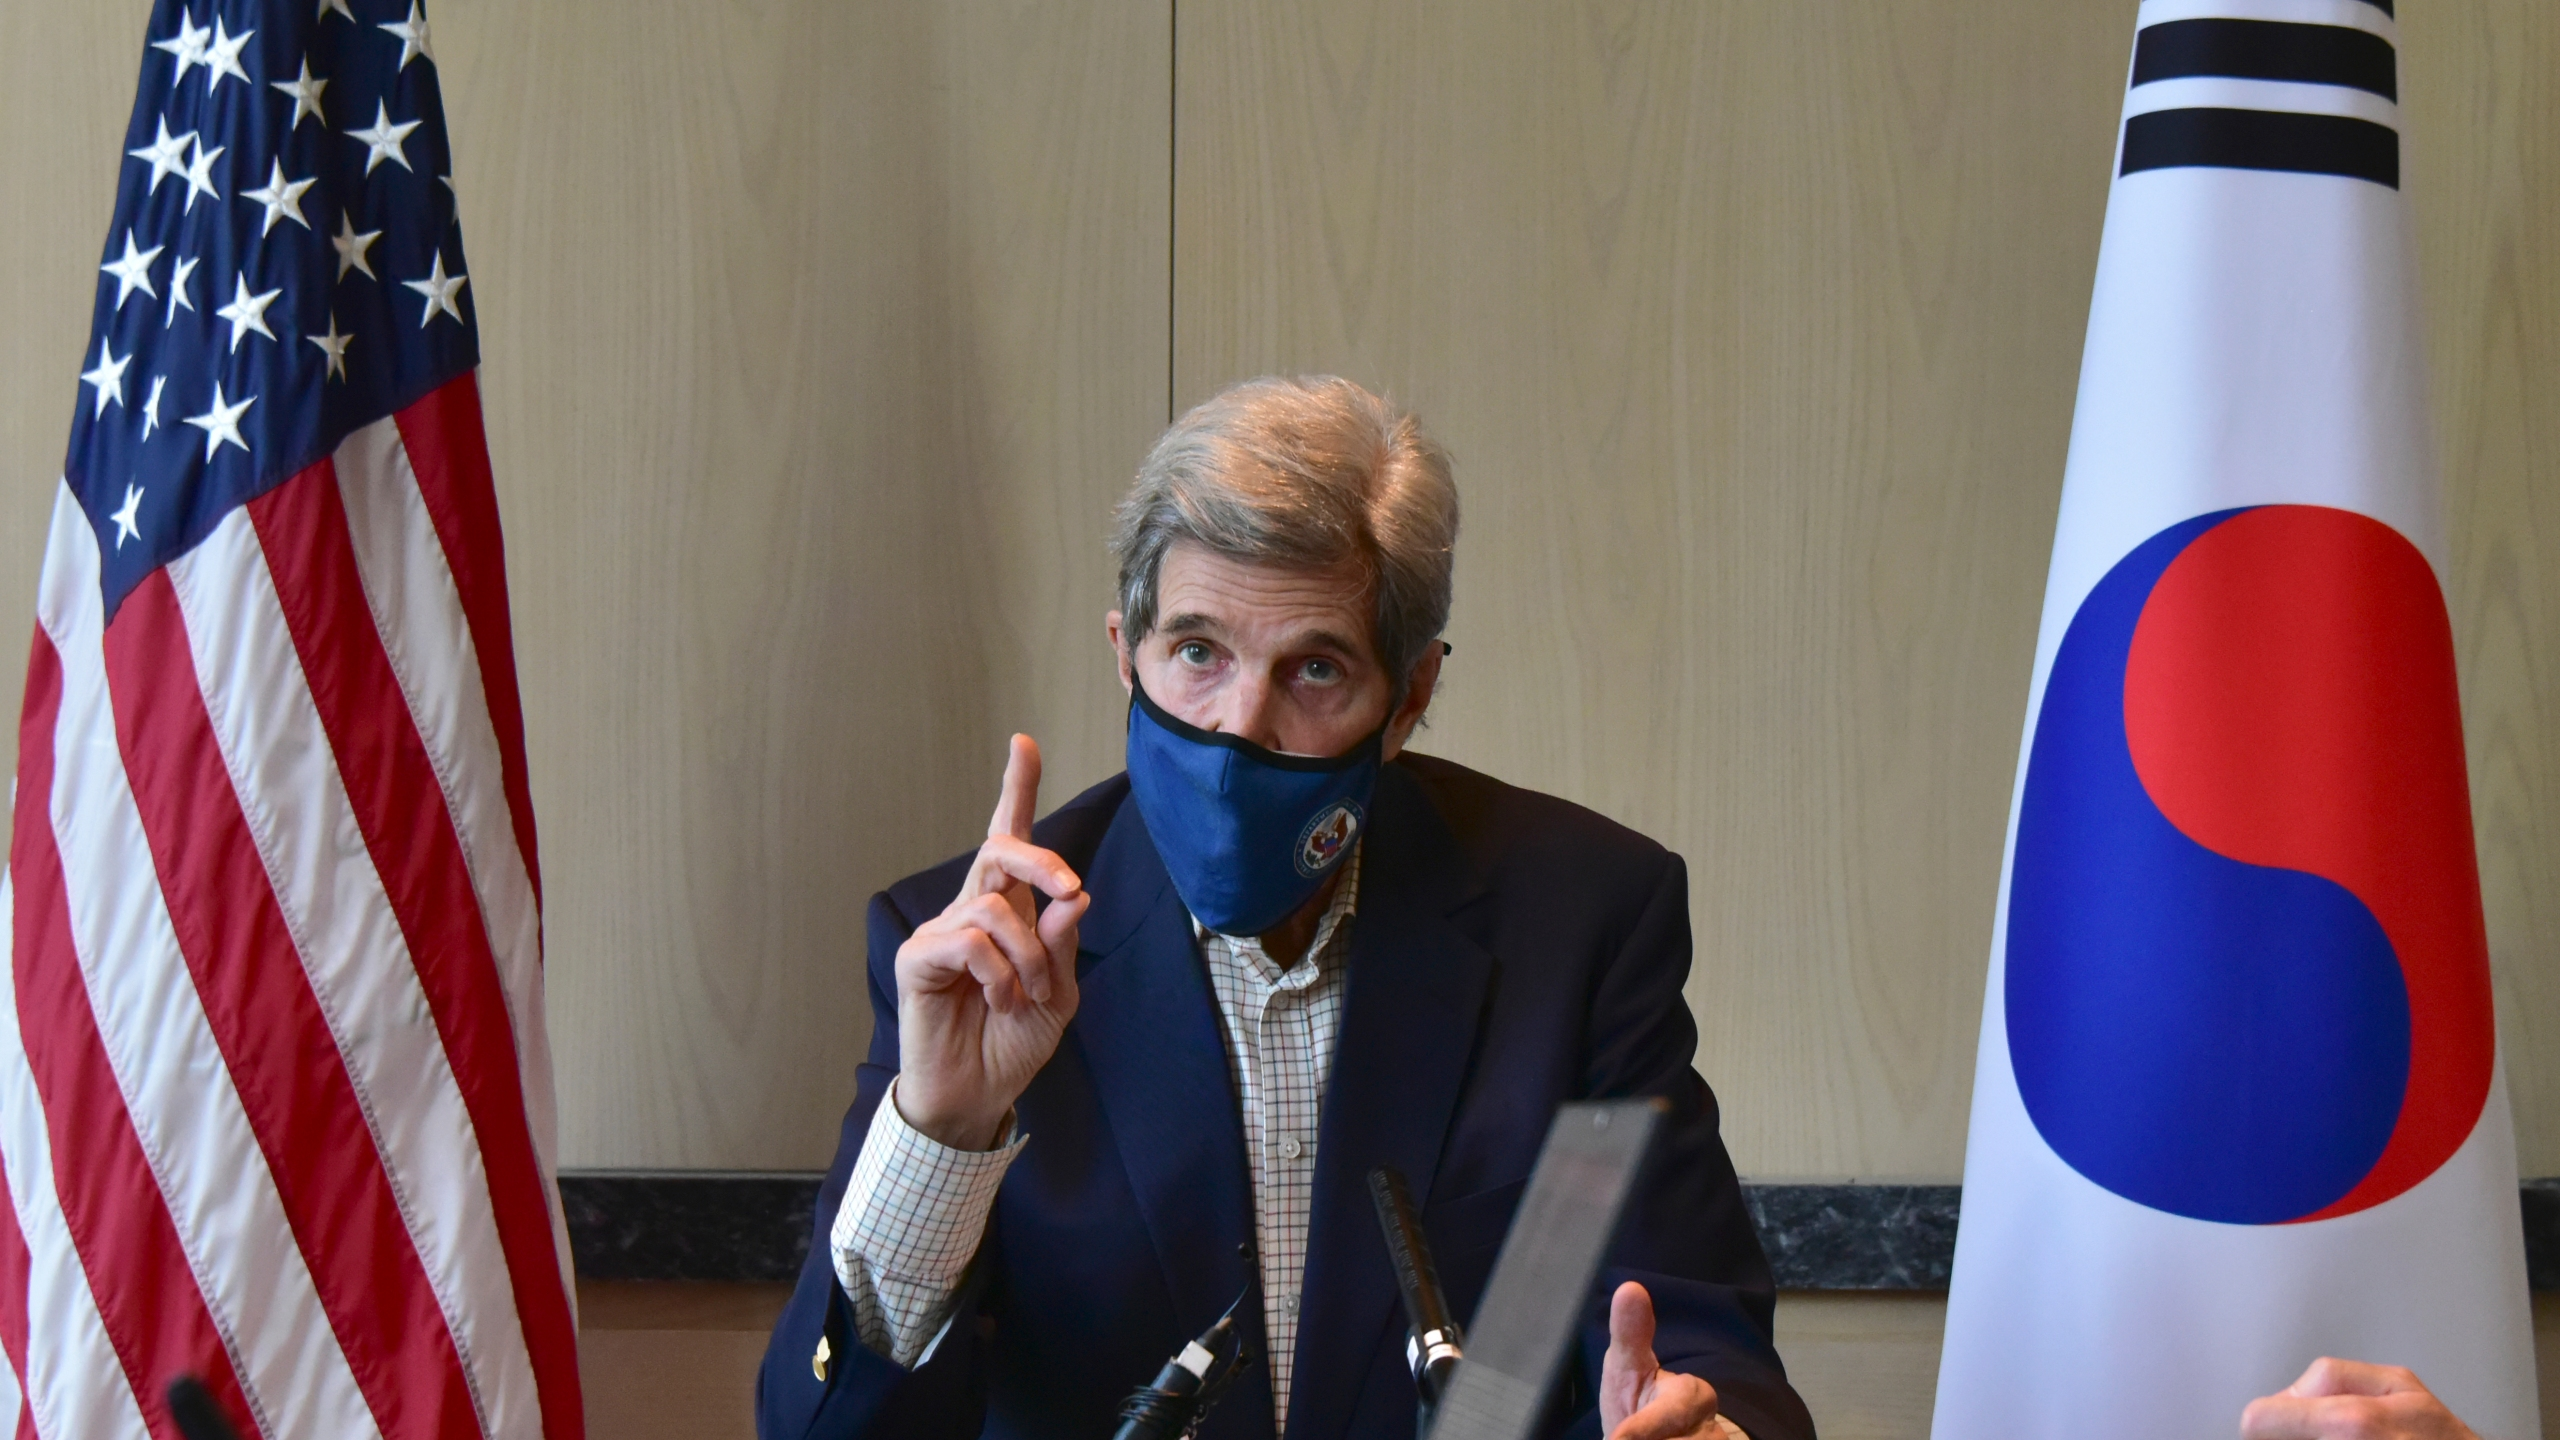 In this photo provided by U.S. Embassy Seoul, U.S. special envoy for climate John Kerry speaks during a round table meeting with the media in Seoul, South Korea, Sunday, April 18, 2021. (U.S. Embassy Seoul via AP)